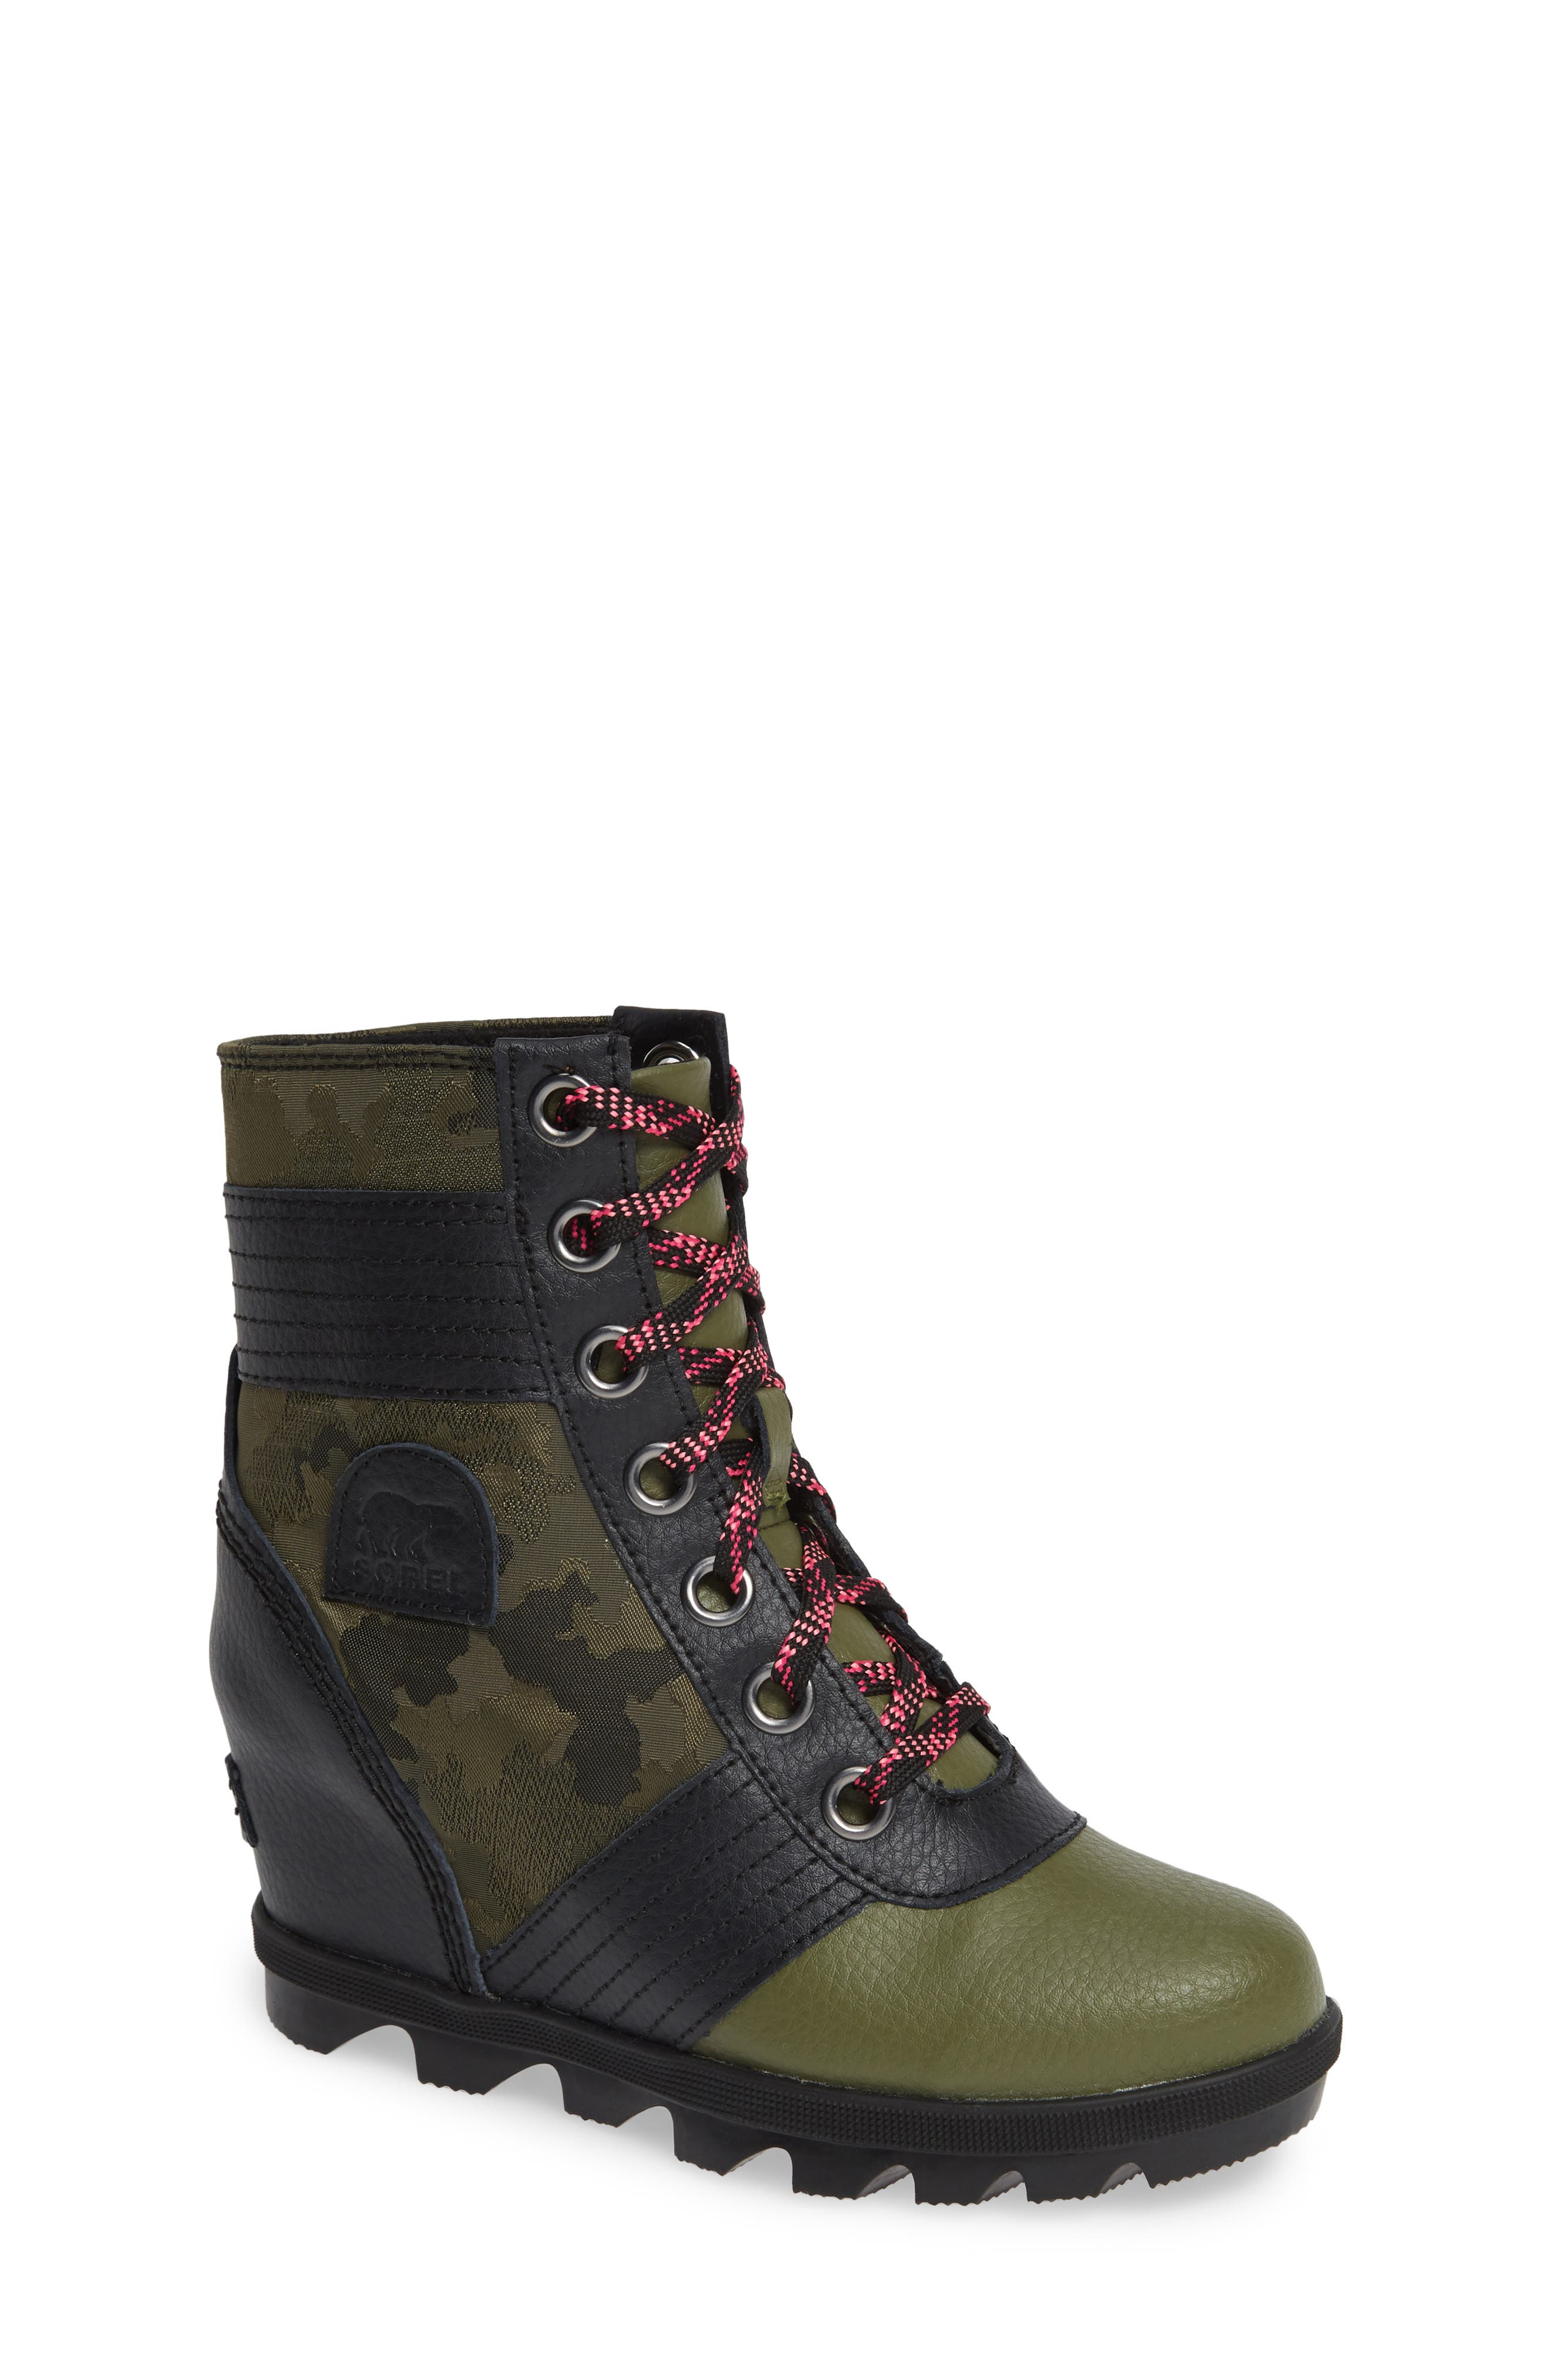 Lexie Waterproof Wedge Bootie,                             Main thumbnail 1, color,                             HIKER GREEN/ BLACK